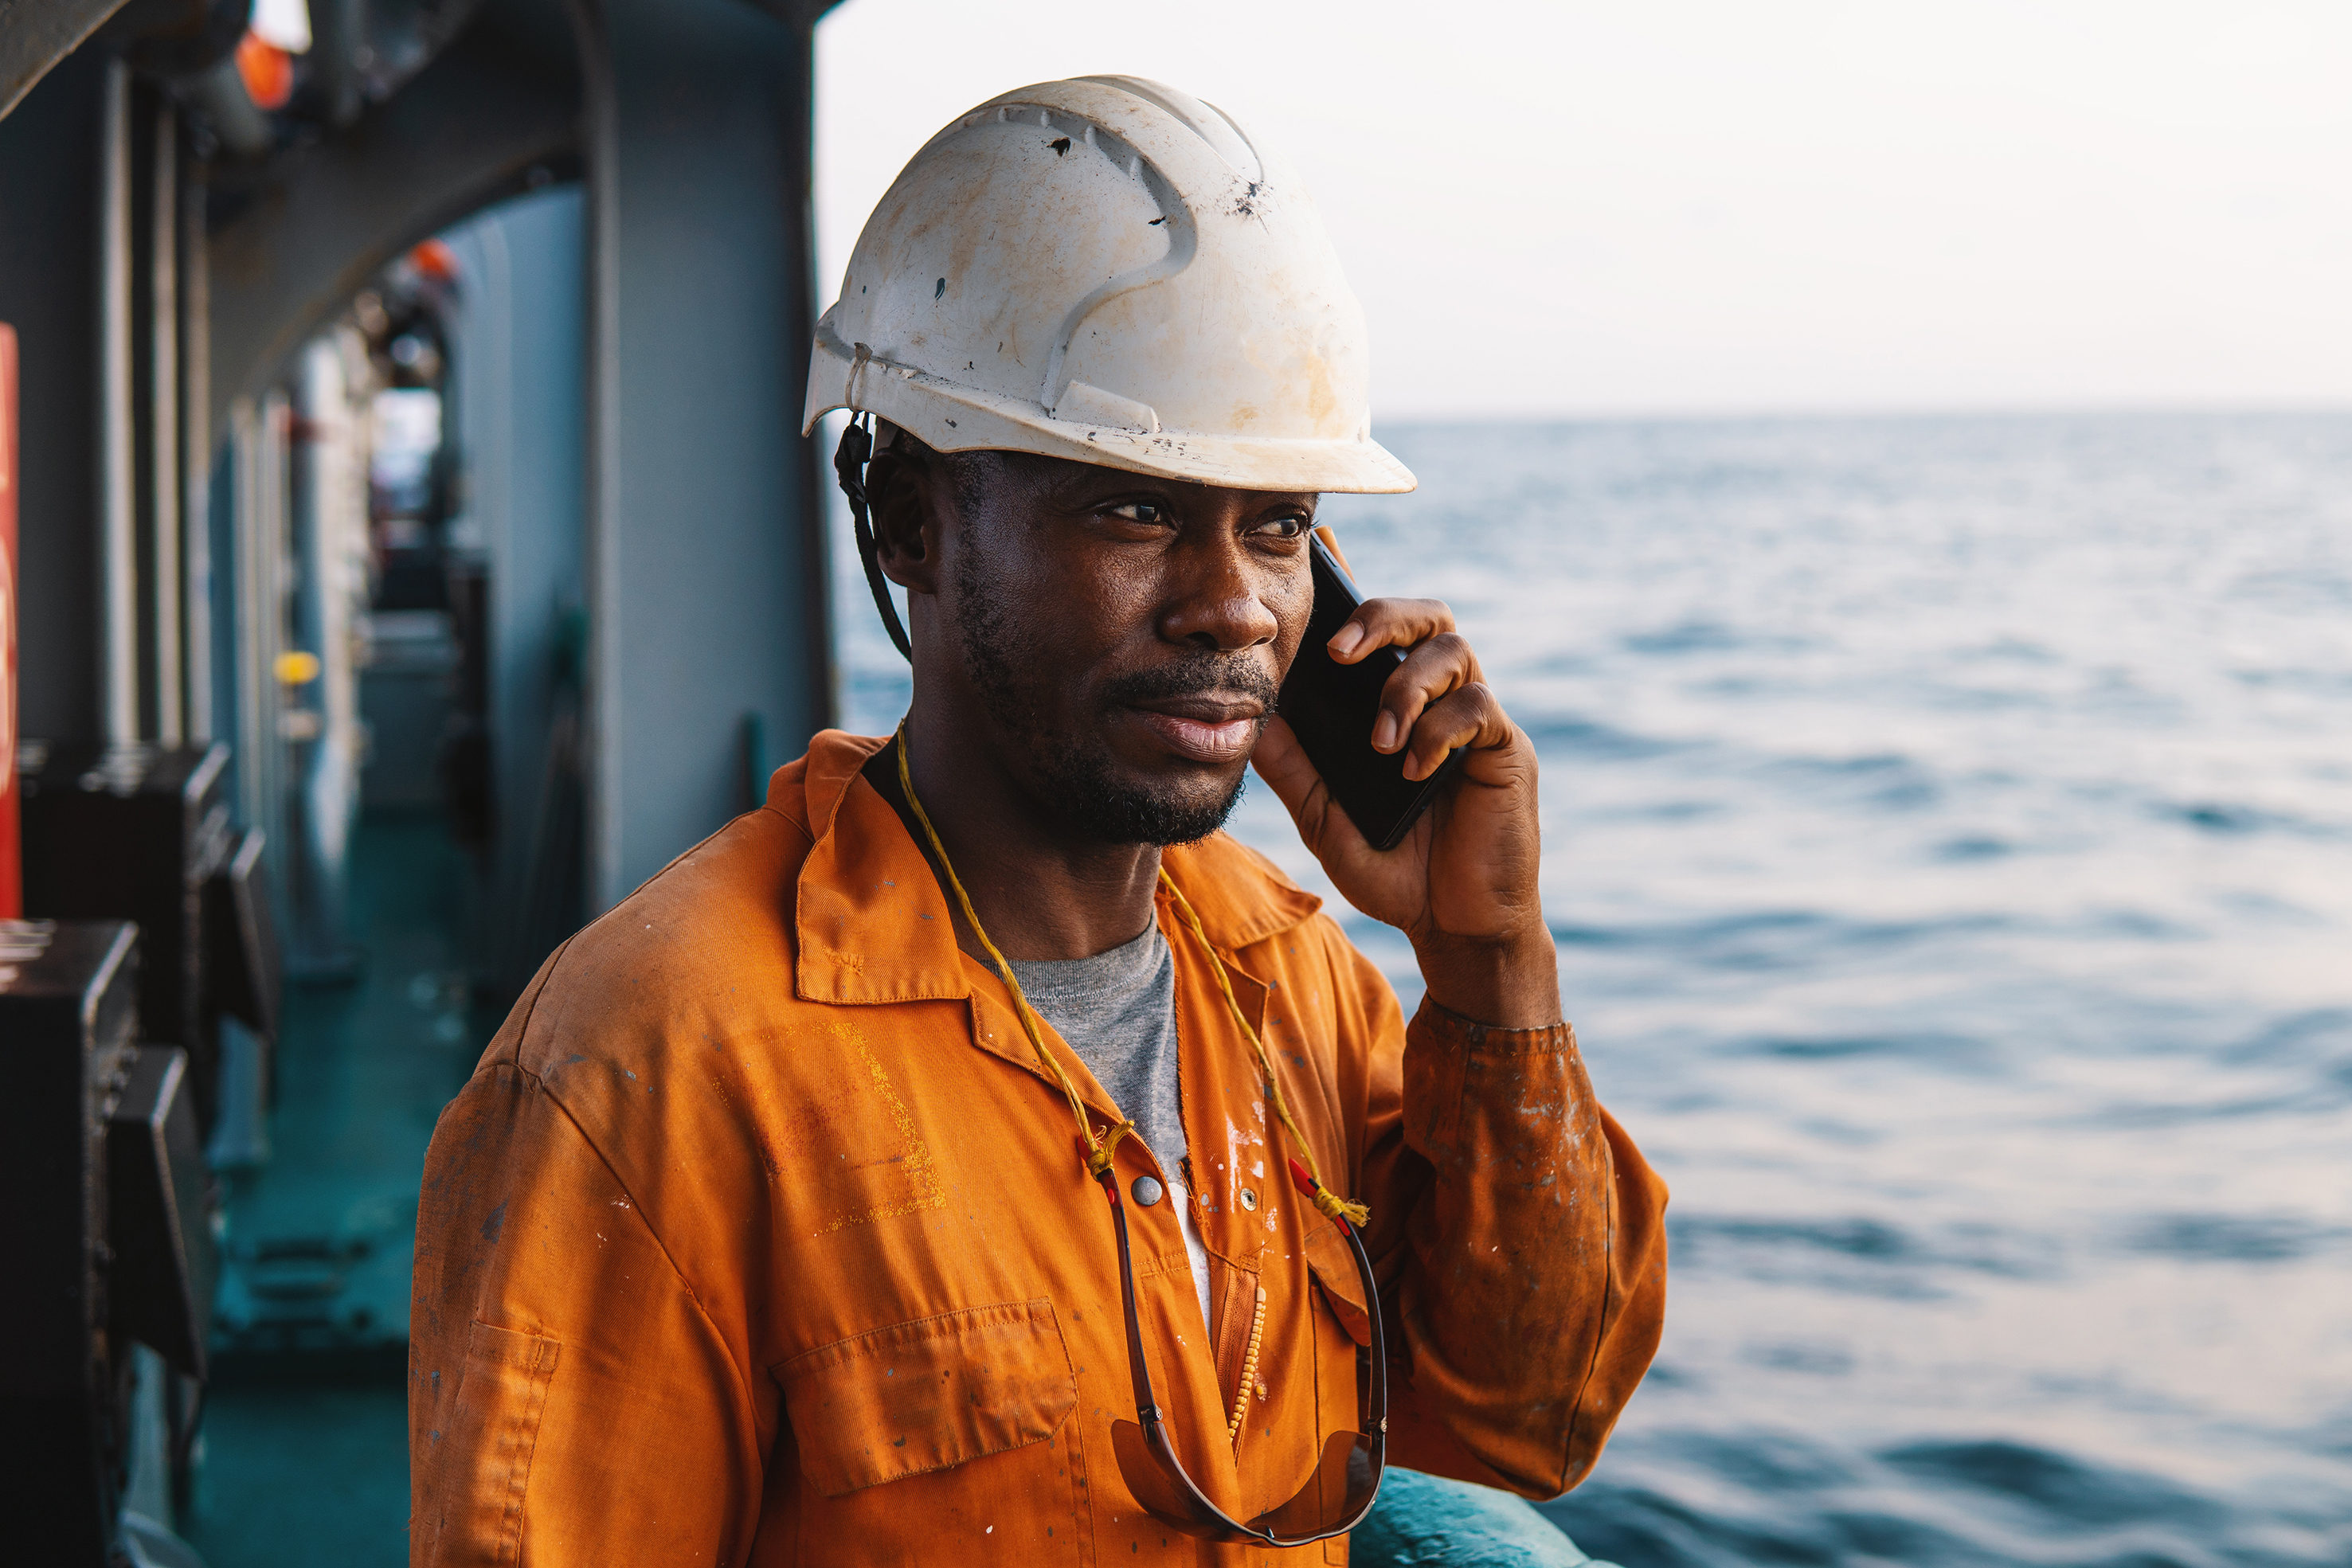 Sailors' Society's unique helpline service provides mental health support to more than 12,000 seafarers